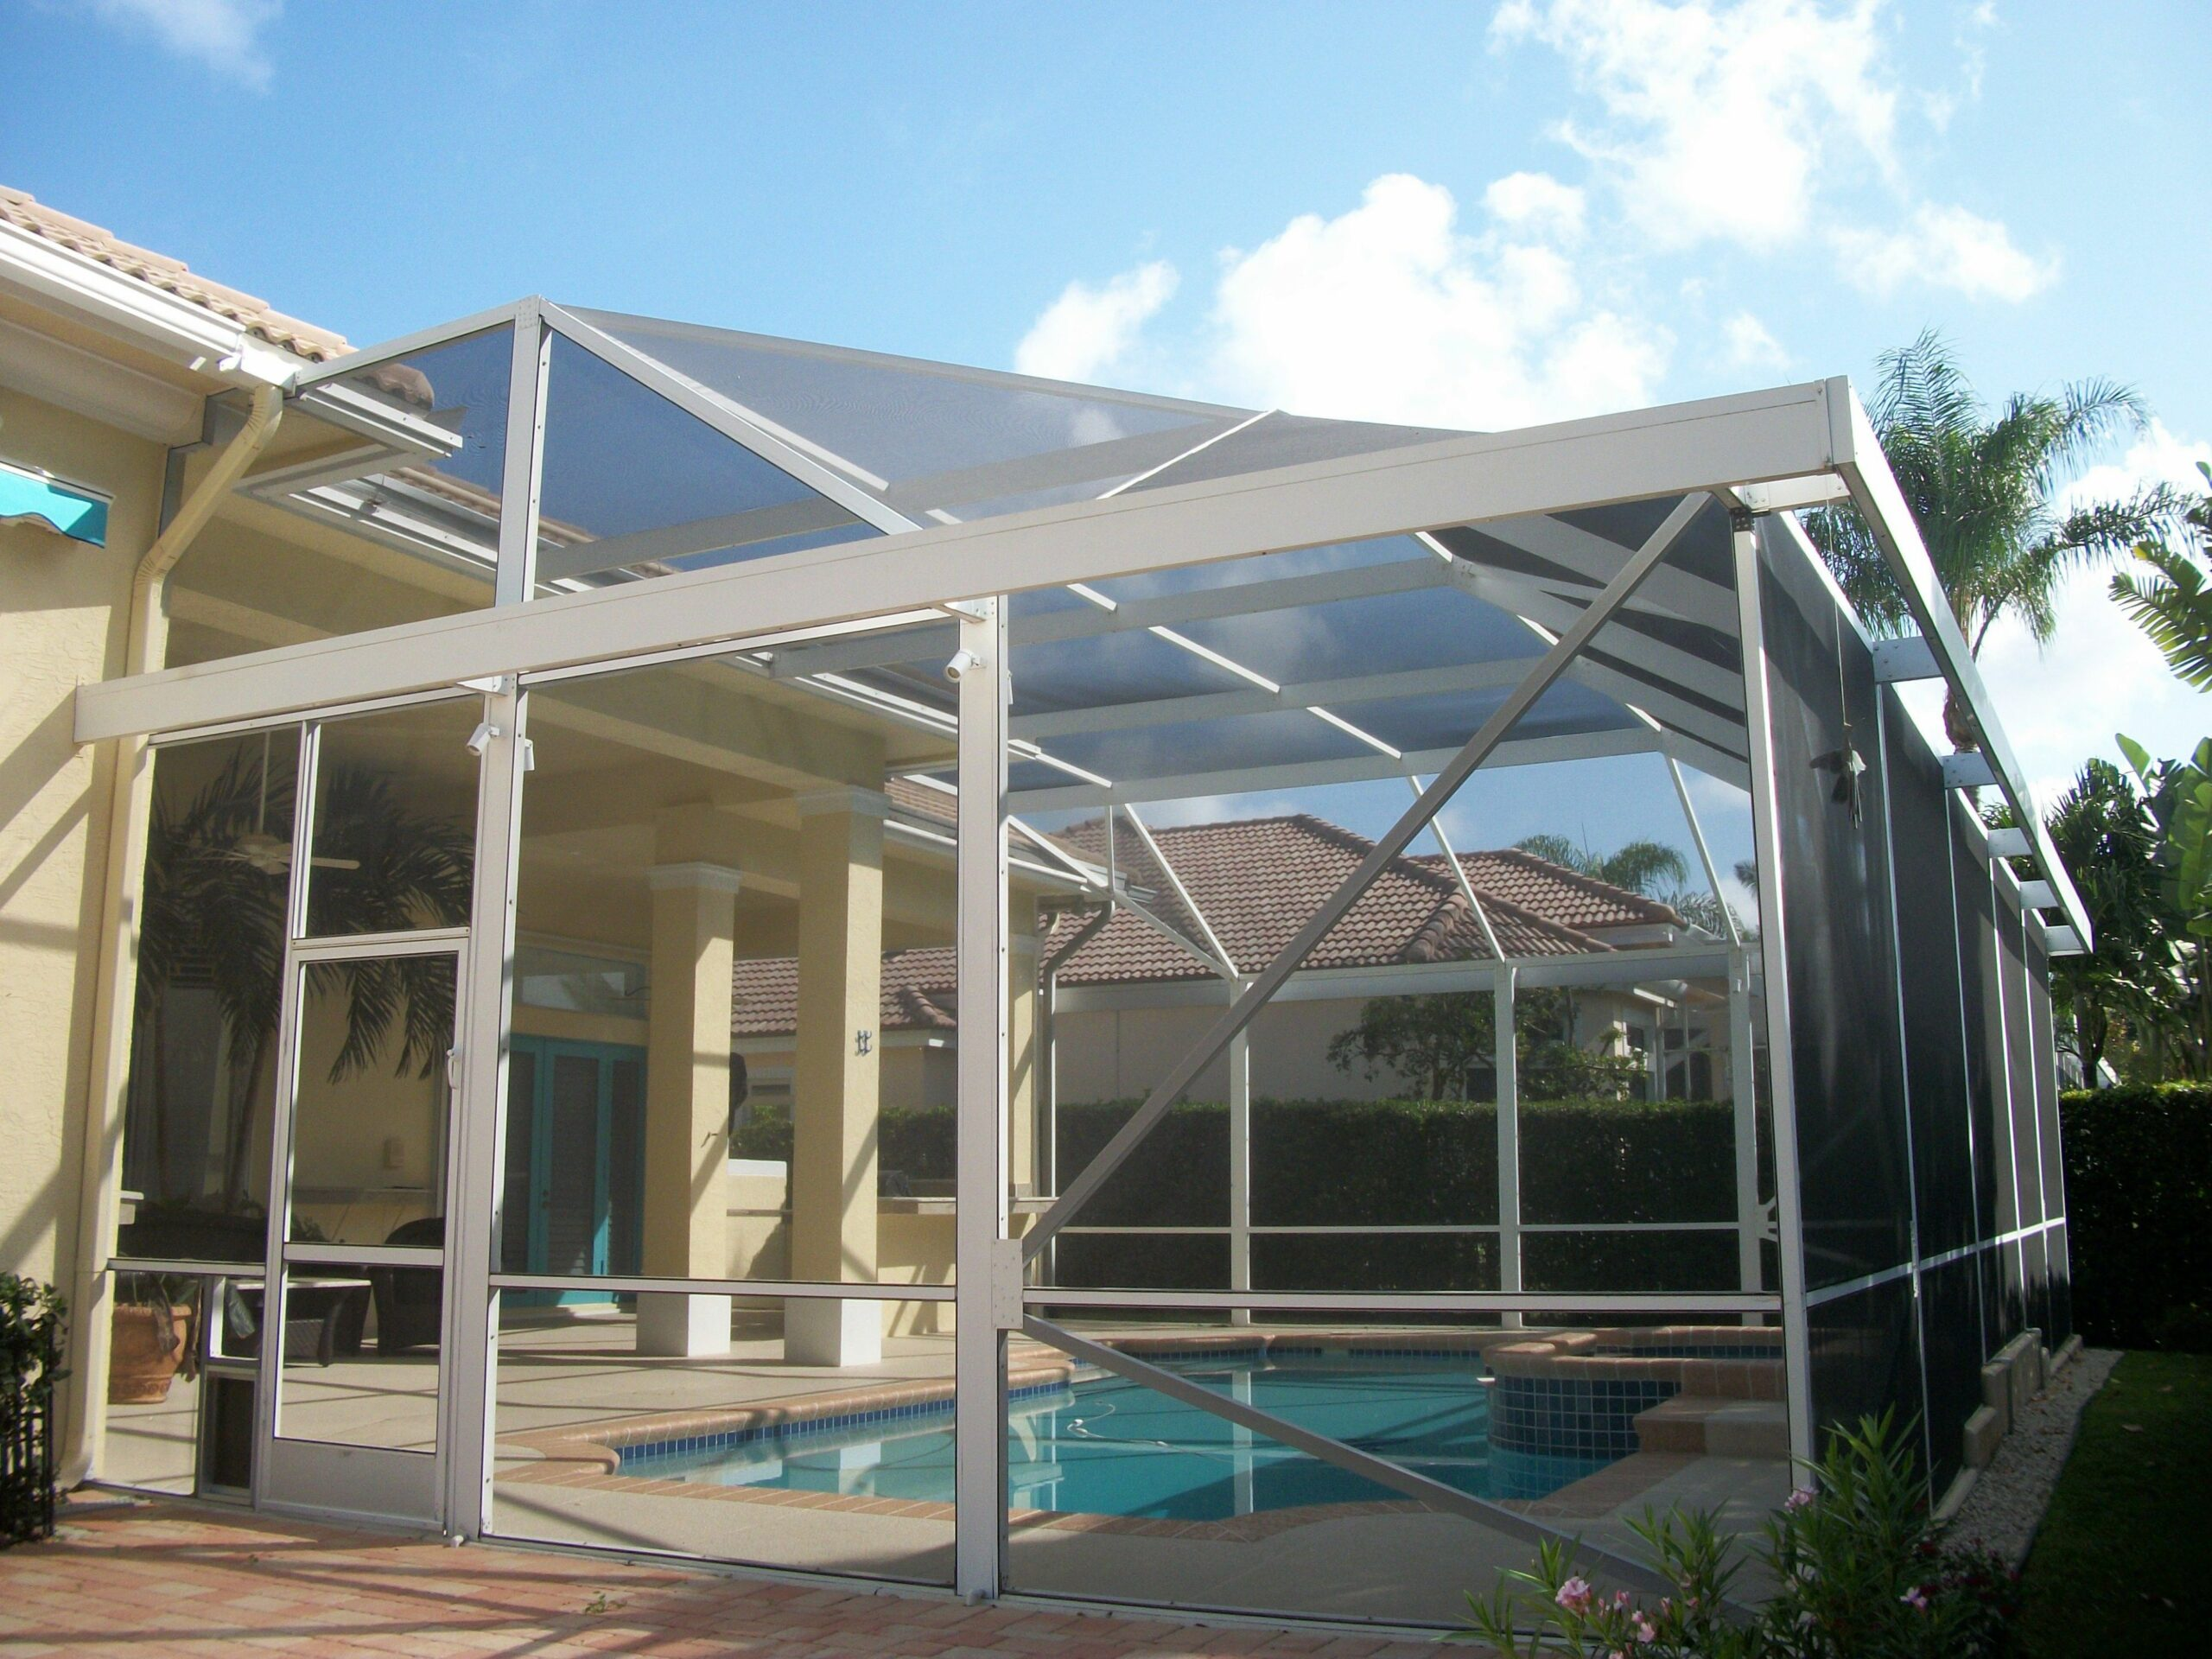 Pool screen enclosure with extra awning arround the top edge, for ..